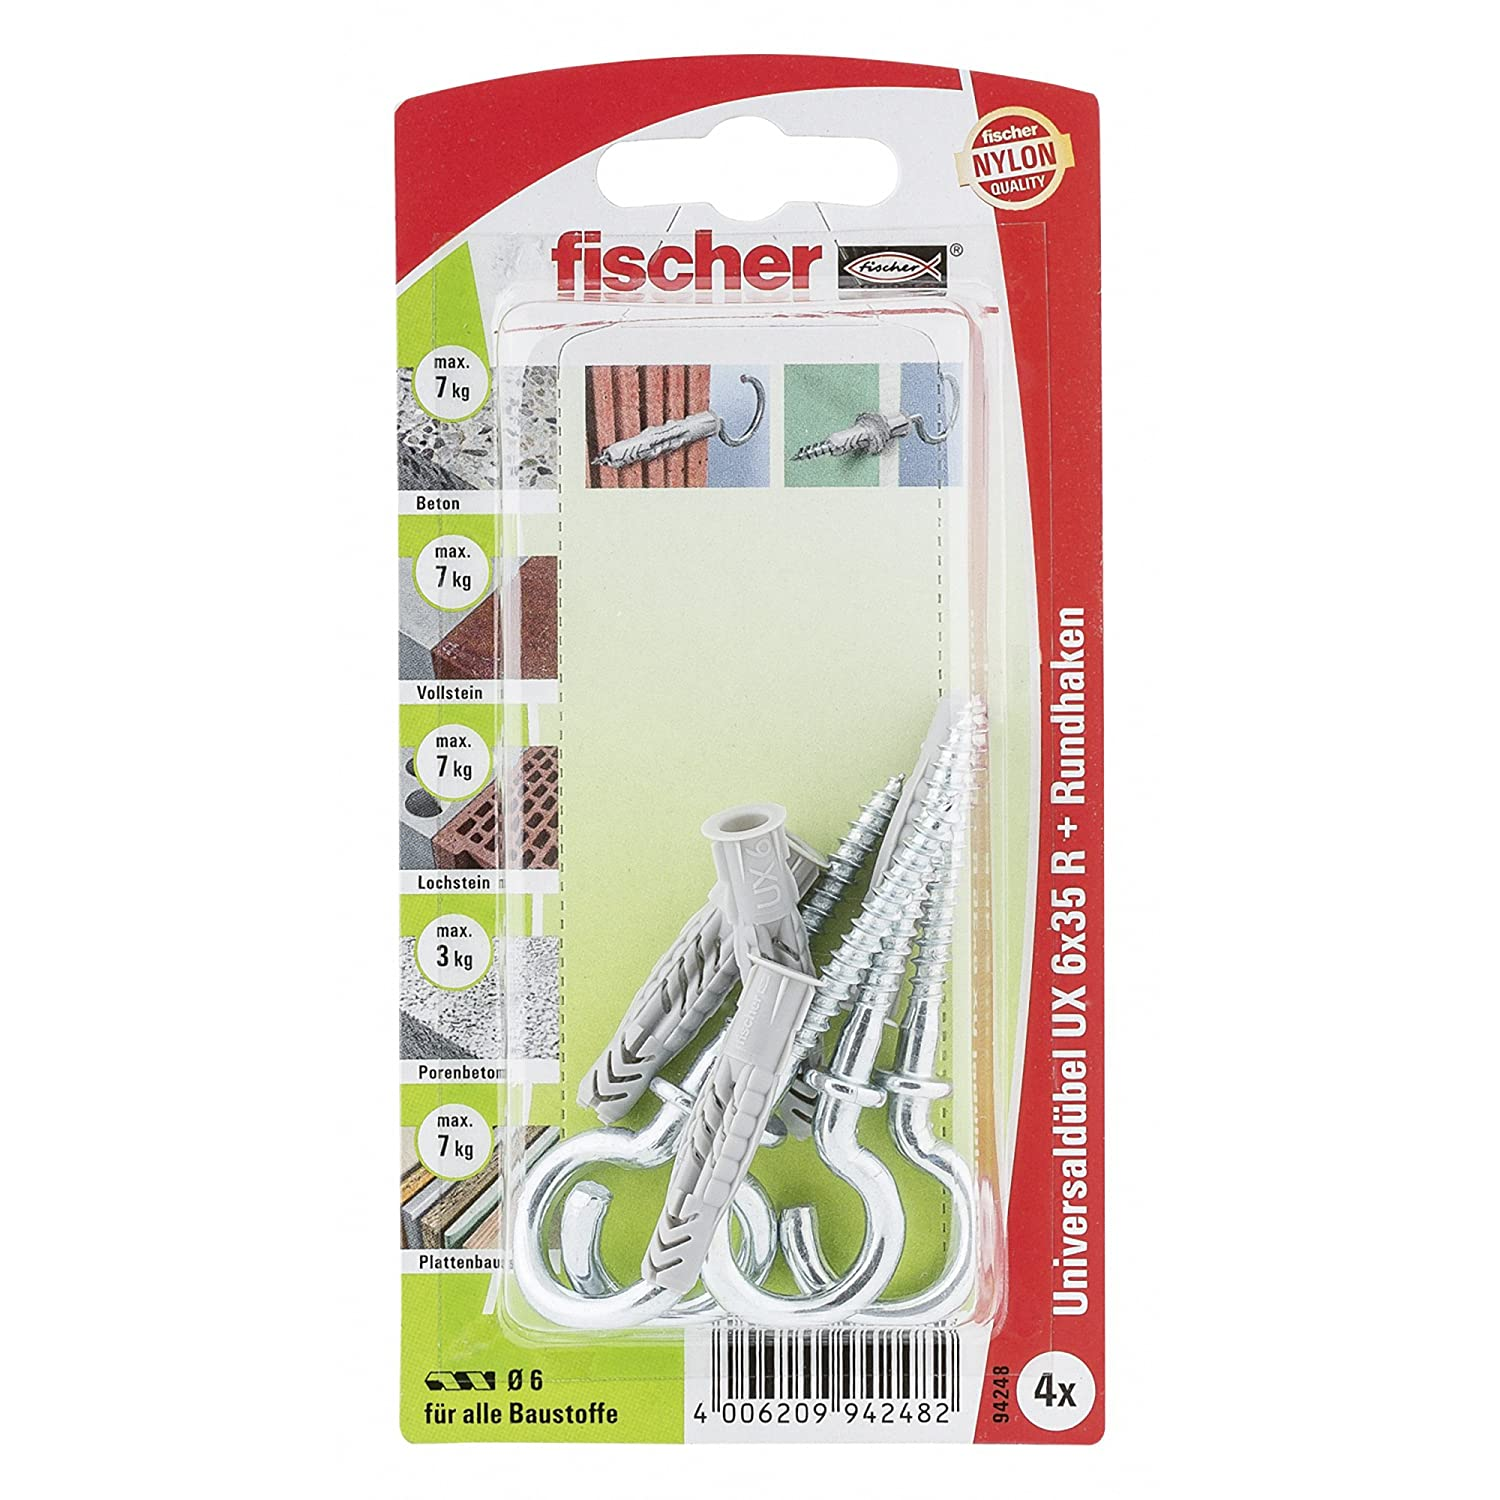 Fischer 94248 Lot de 4 Chevilles universelle UX 6 x 35 mm RH K